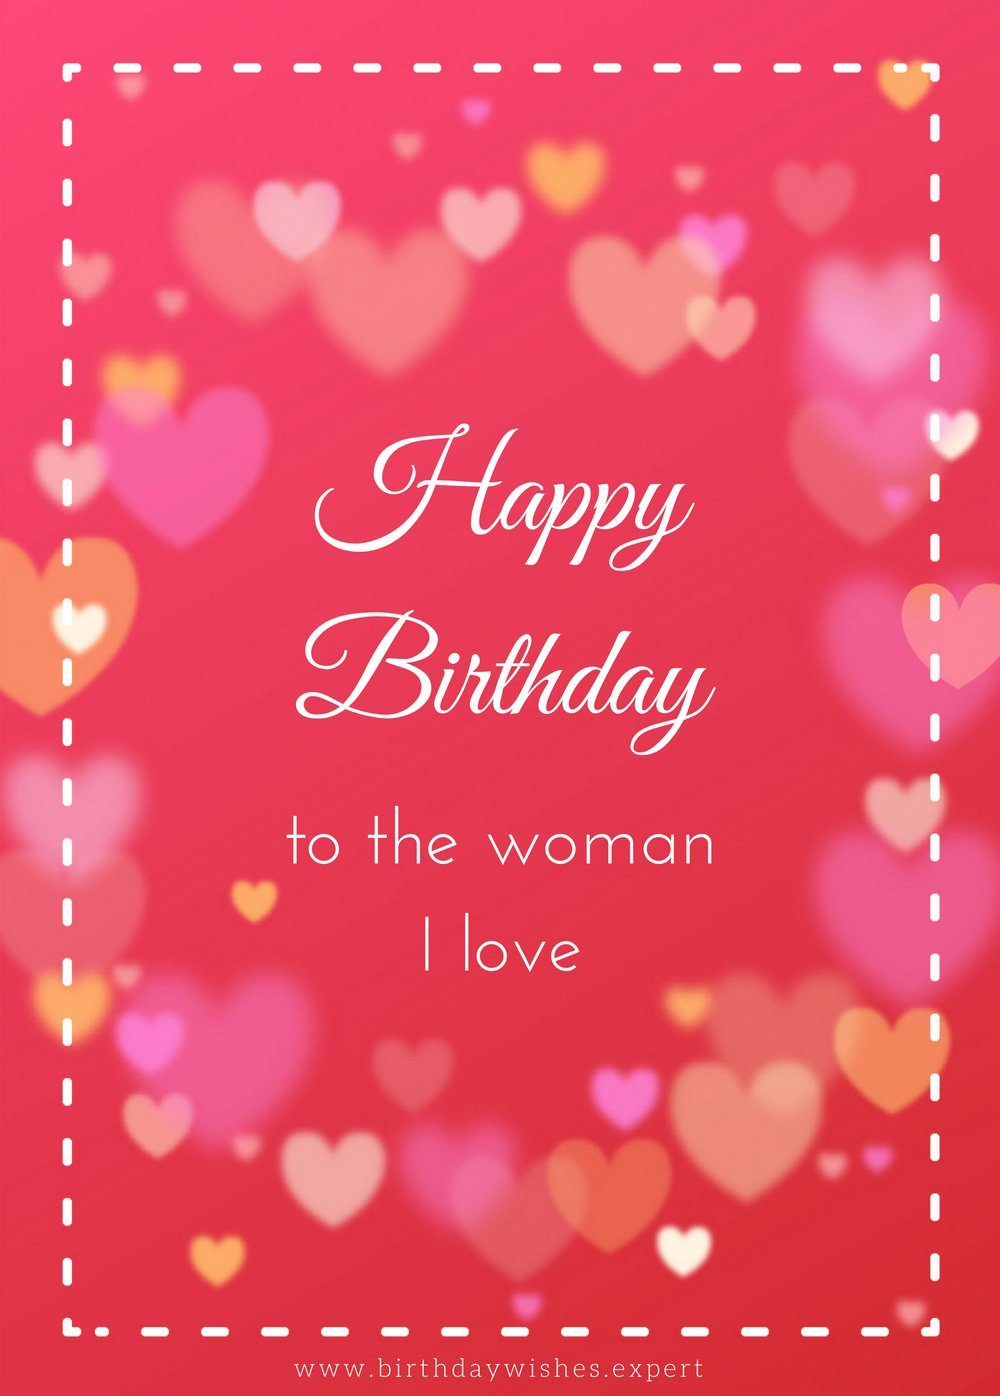 Top 70 Birthday Wishes for your Wife – Happy Birthday Greeting for Wife